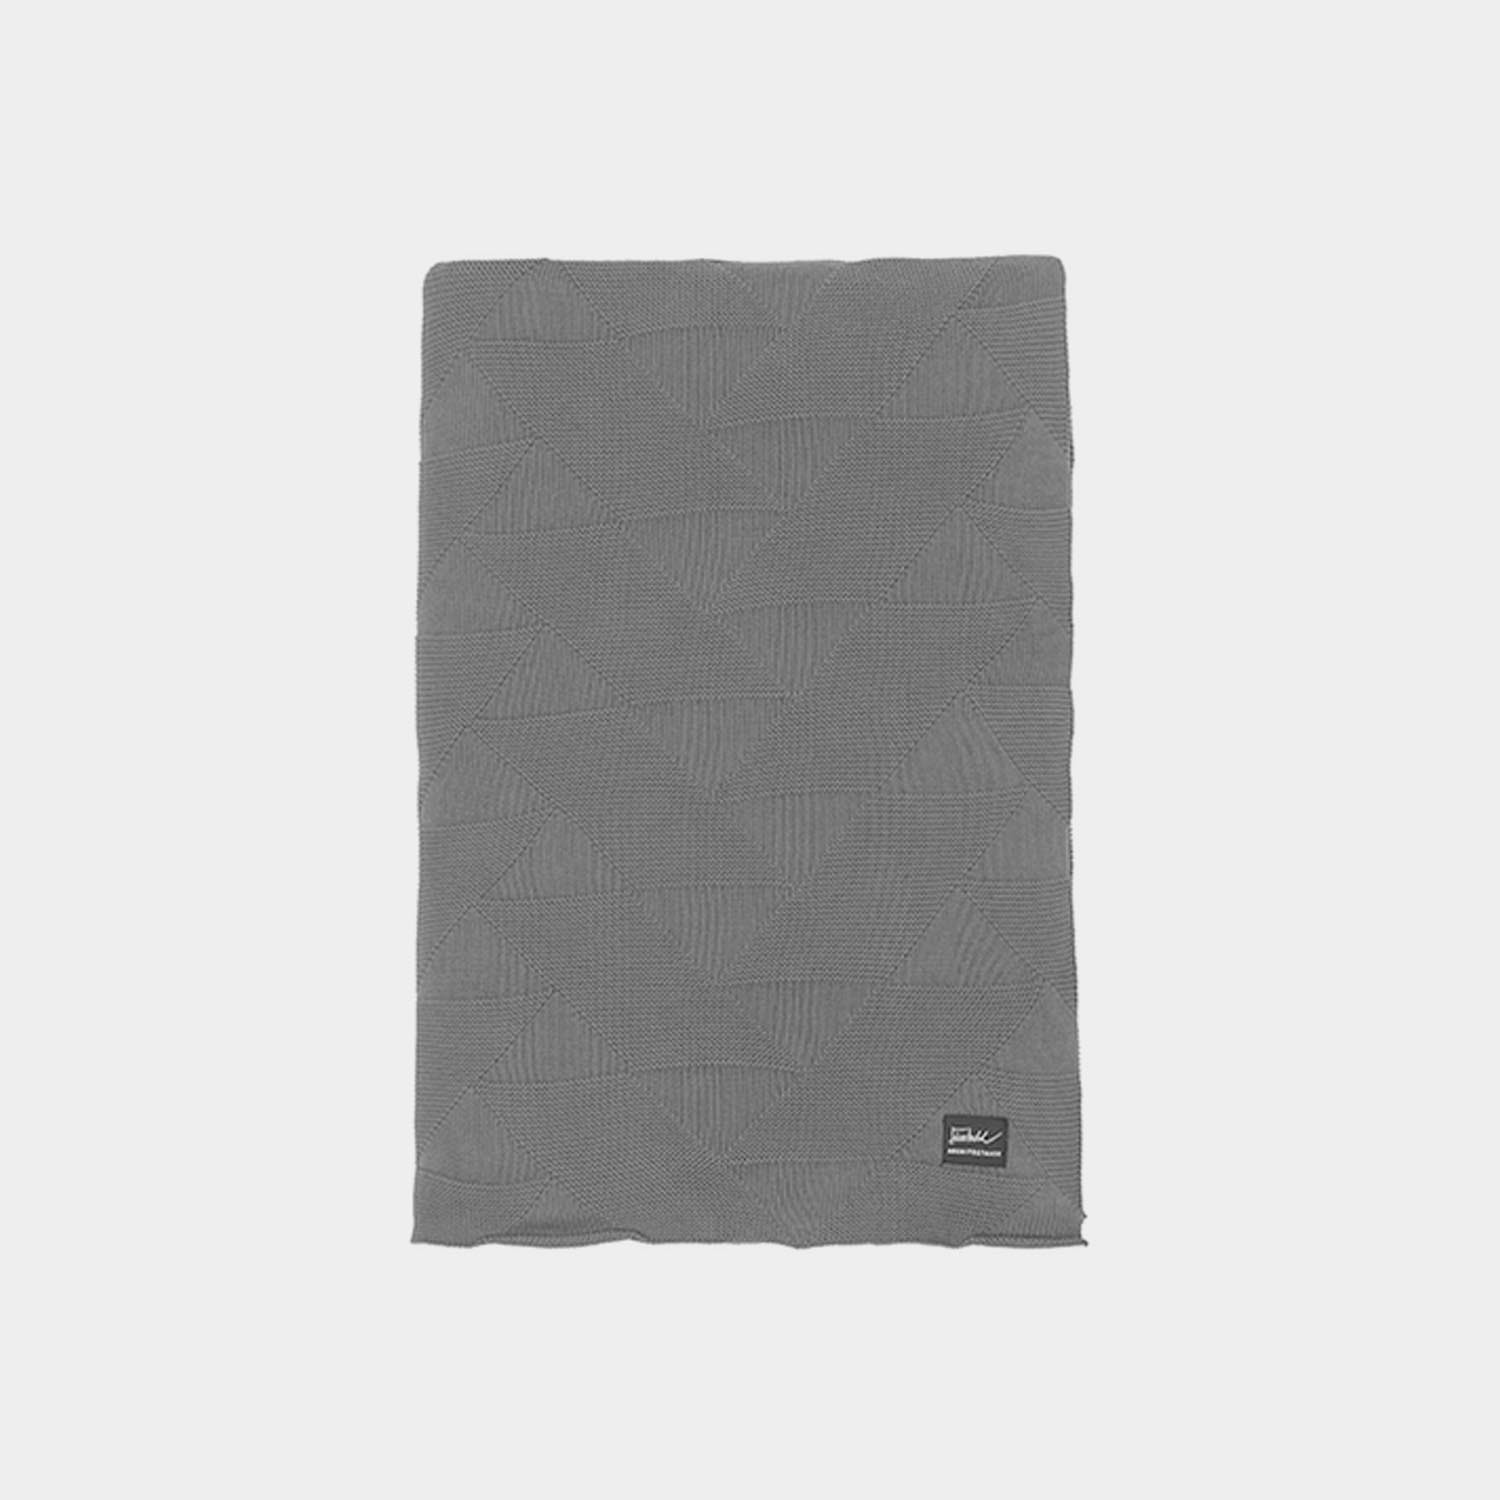 FJ Pattern Blanket, Gray